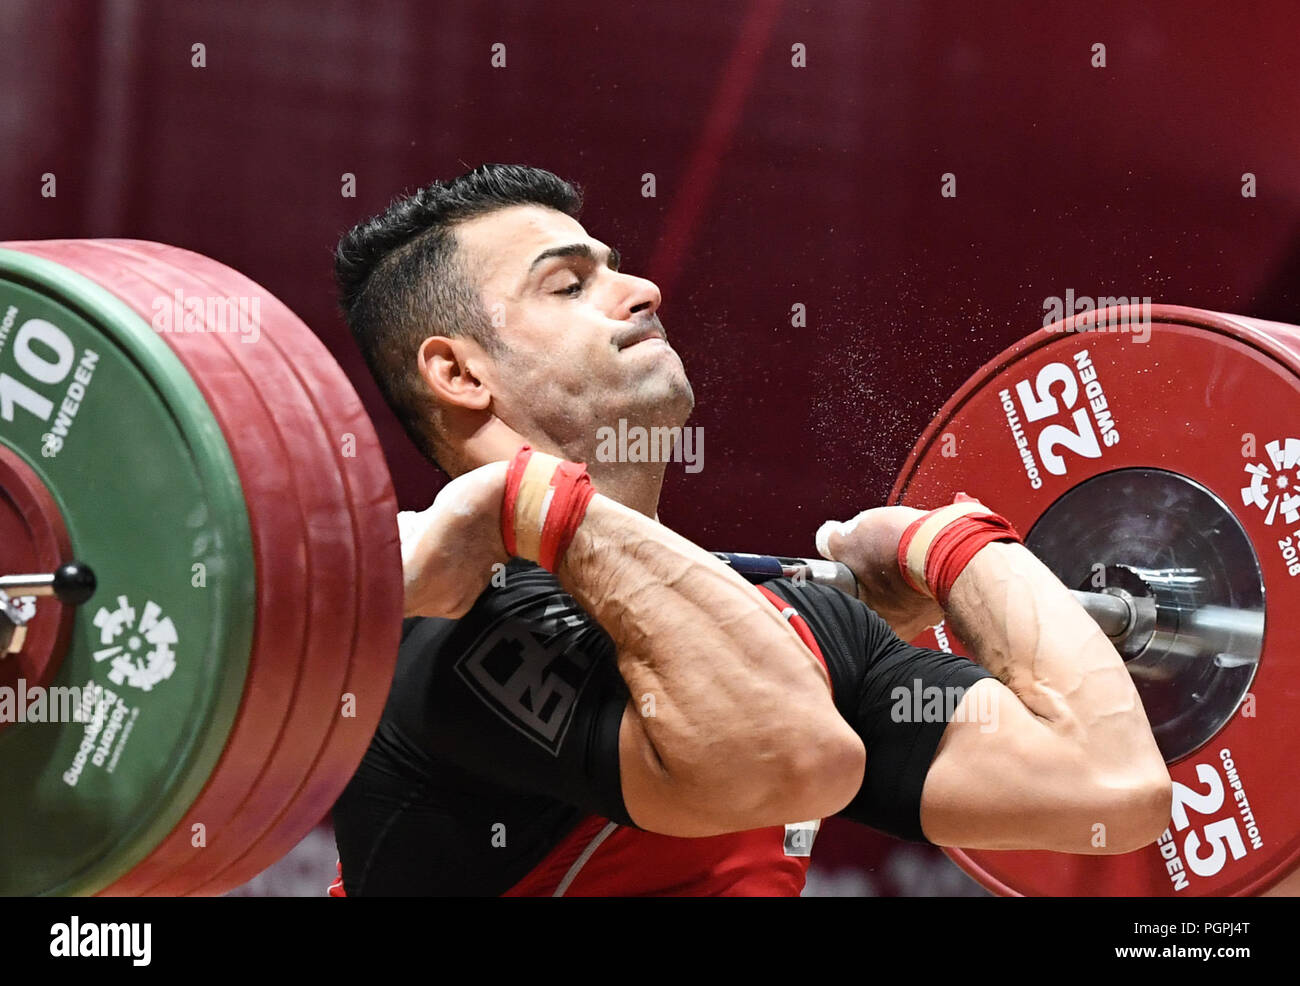 (180828) -- JAKARTA, Aug. 28, 2018 (Xinhua) -- Iraqi Safaa Rashid Mohmood Aljumaili competes during the men's 85kg event of weightlifting at the 18th Asian Games in Jakarta, Indonesia, Aug. 24, 2018. Worldwide sports are a means to promote peace, but the people who engage in sports do not always live in peaceful environments. The Syrian civil war has raged on for years, the peace process in Afghanistan is still encountering roadblocks, and Iraq is still turbulent. All of these places have sent athletes to the ongoing 2018 Asian Games. When Safaa Rashid Mohmood Aljumaili clinched the firs - Stock Image